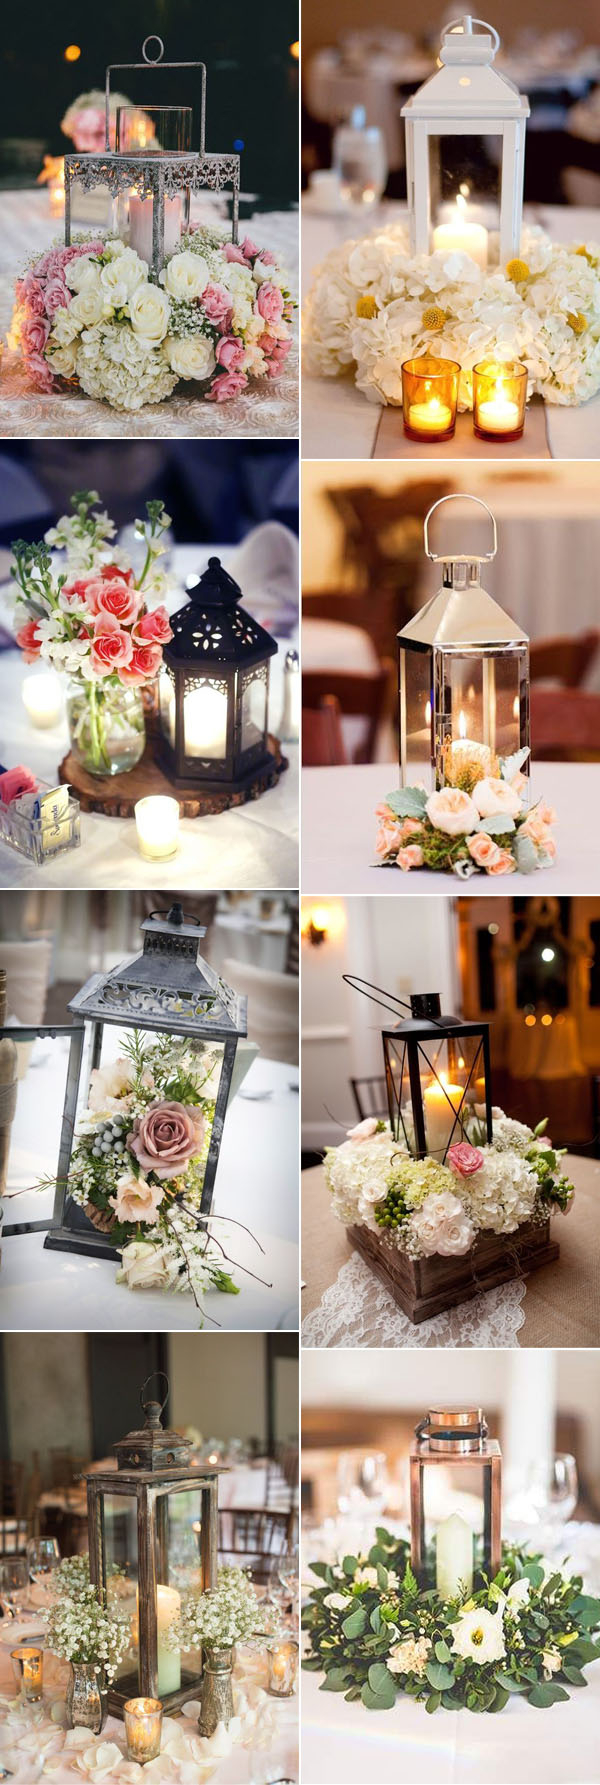 Lantern Decorations For Weddings 32 Stunning Wedding Centerpieces Ideas Elegantweddinginvites Blog